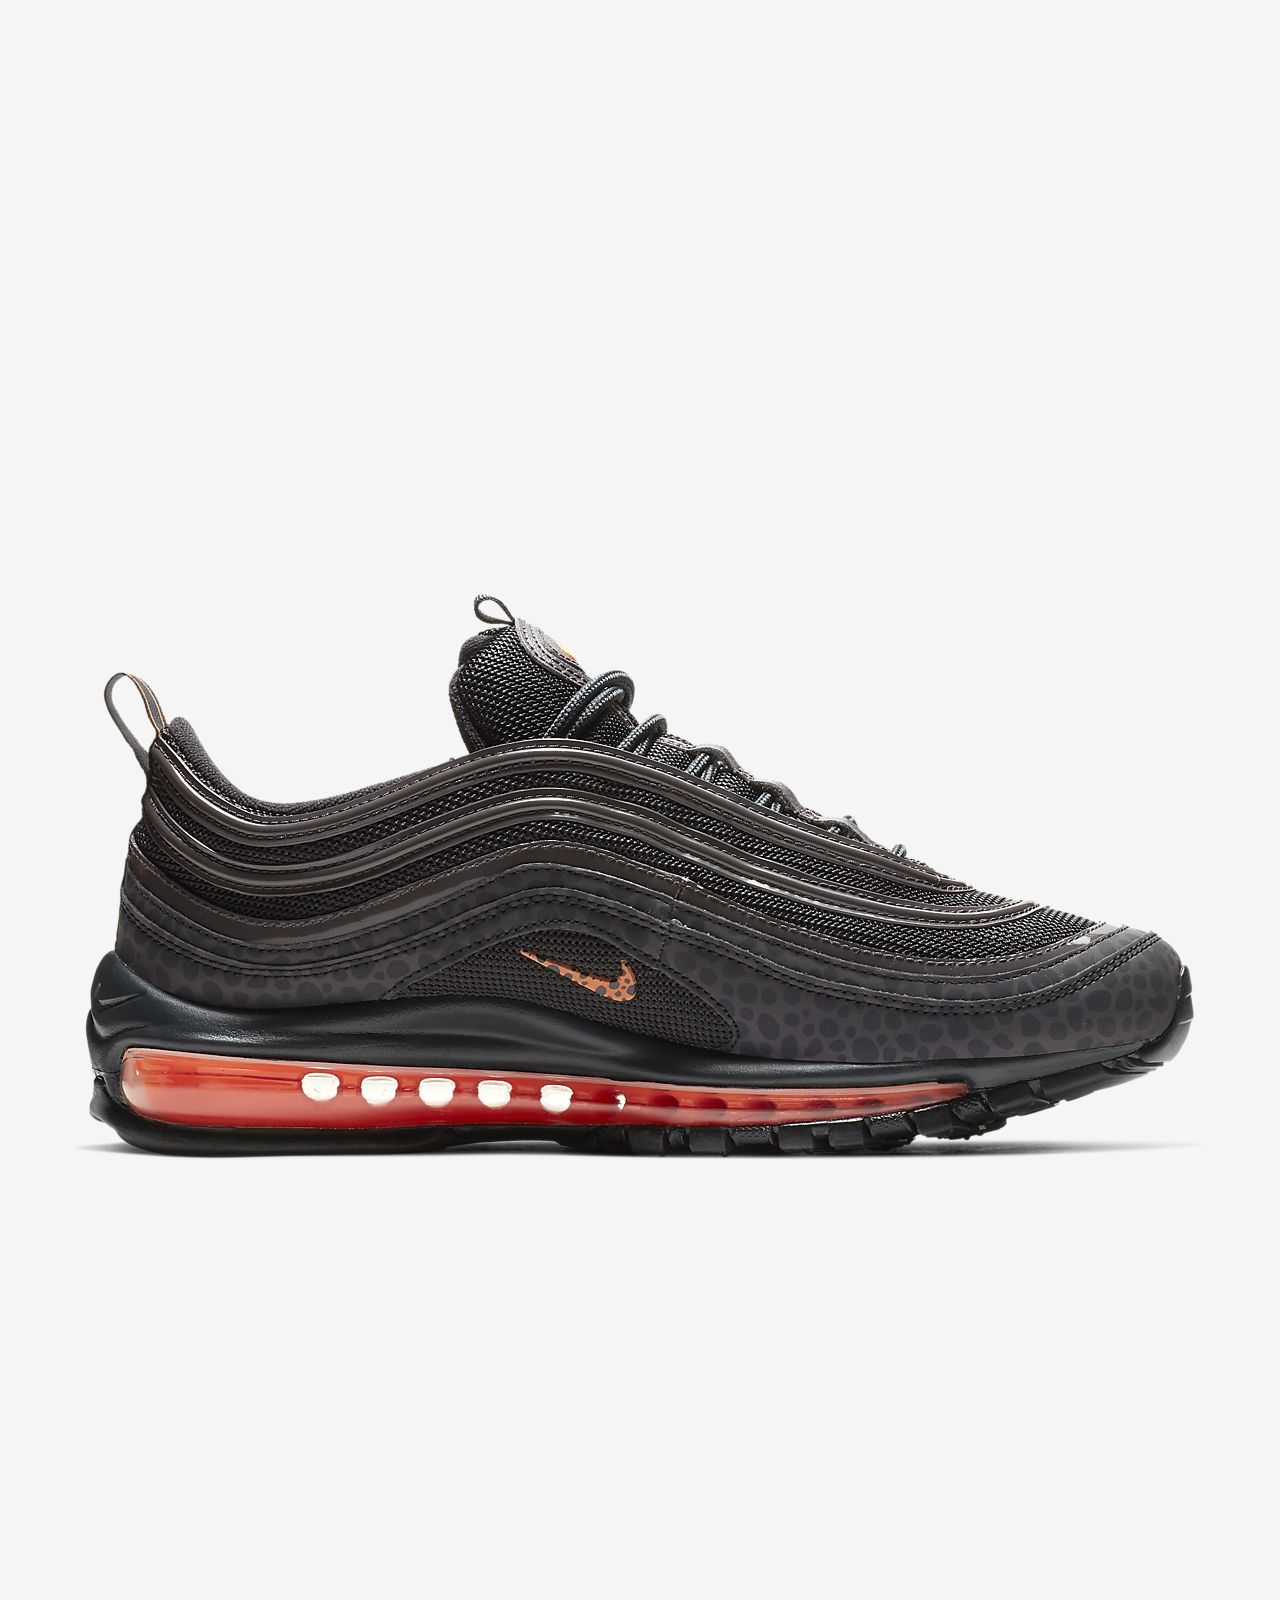 hot sale online 08f99 dae8c ... Nike Air Max 97 SE Reflective Men s Shoe